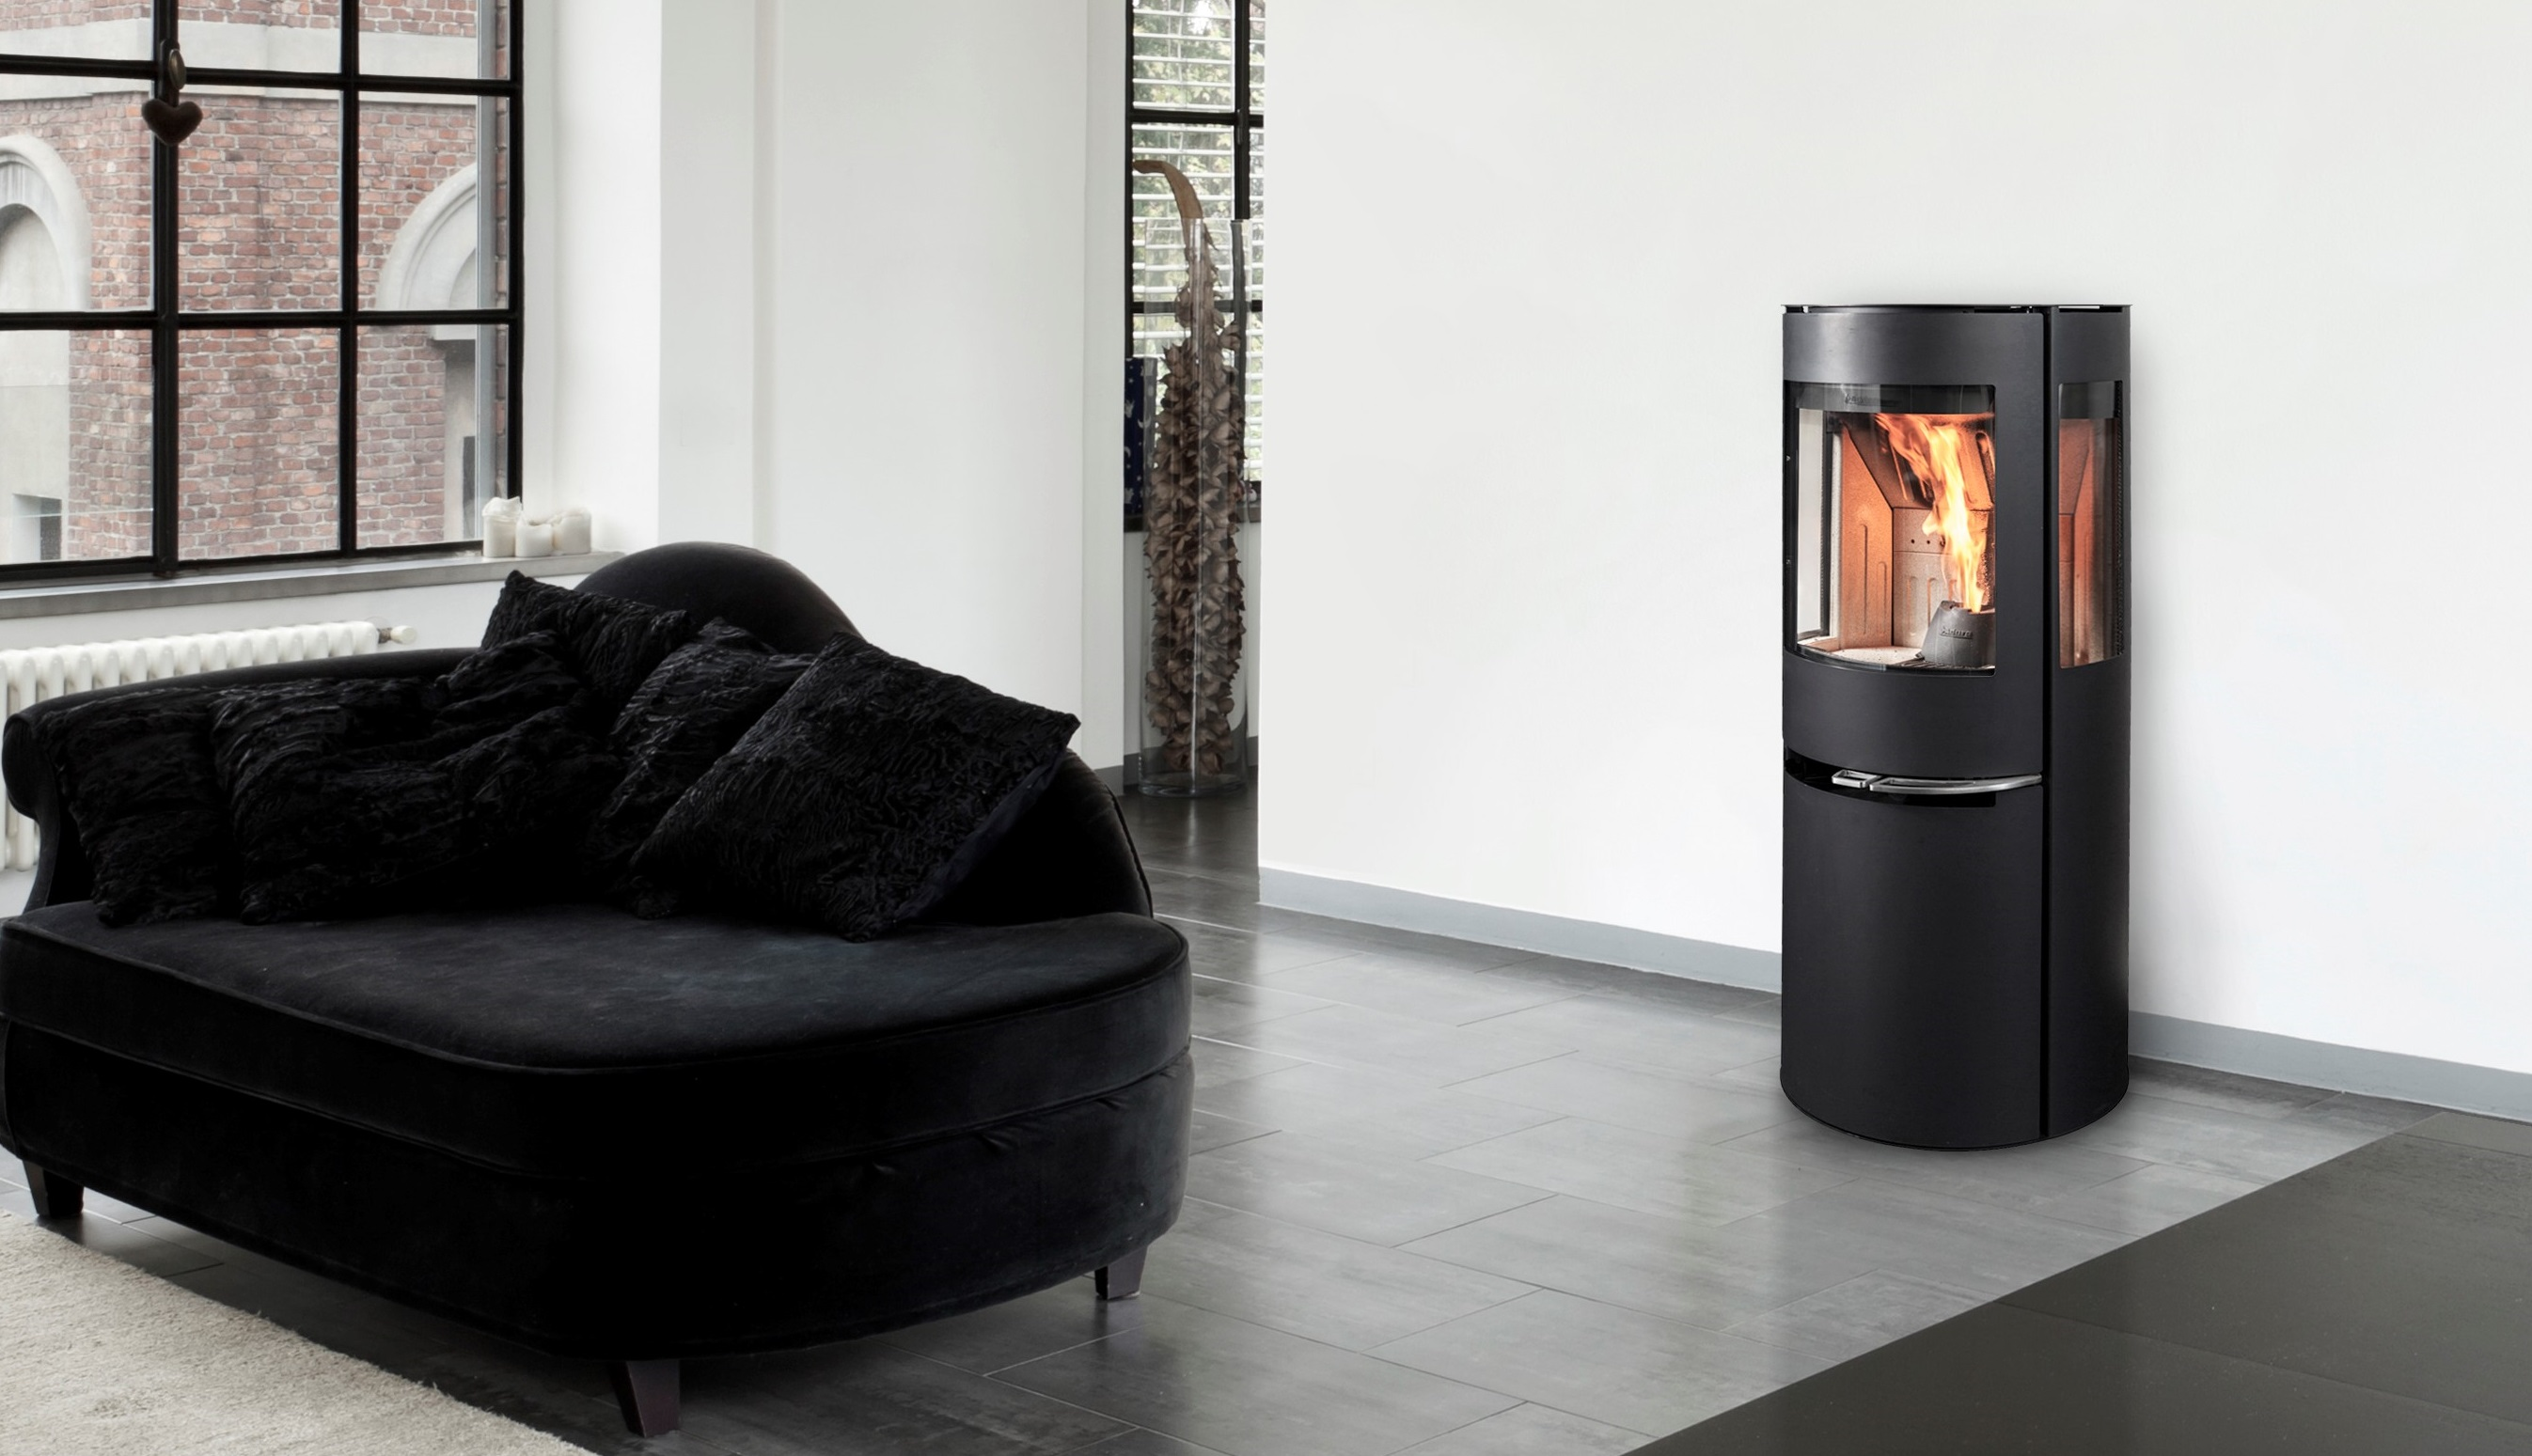 Prix Insert A Pellet Pellet Stove From Aduro Read About Aduro H1 Wood Pellet Stove Online